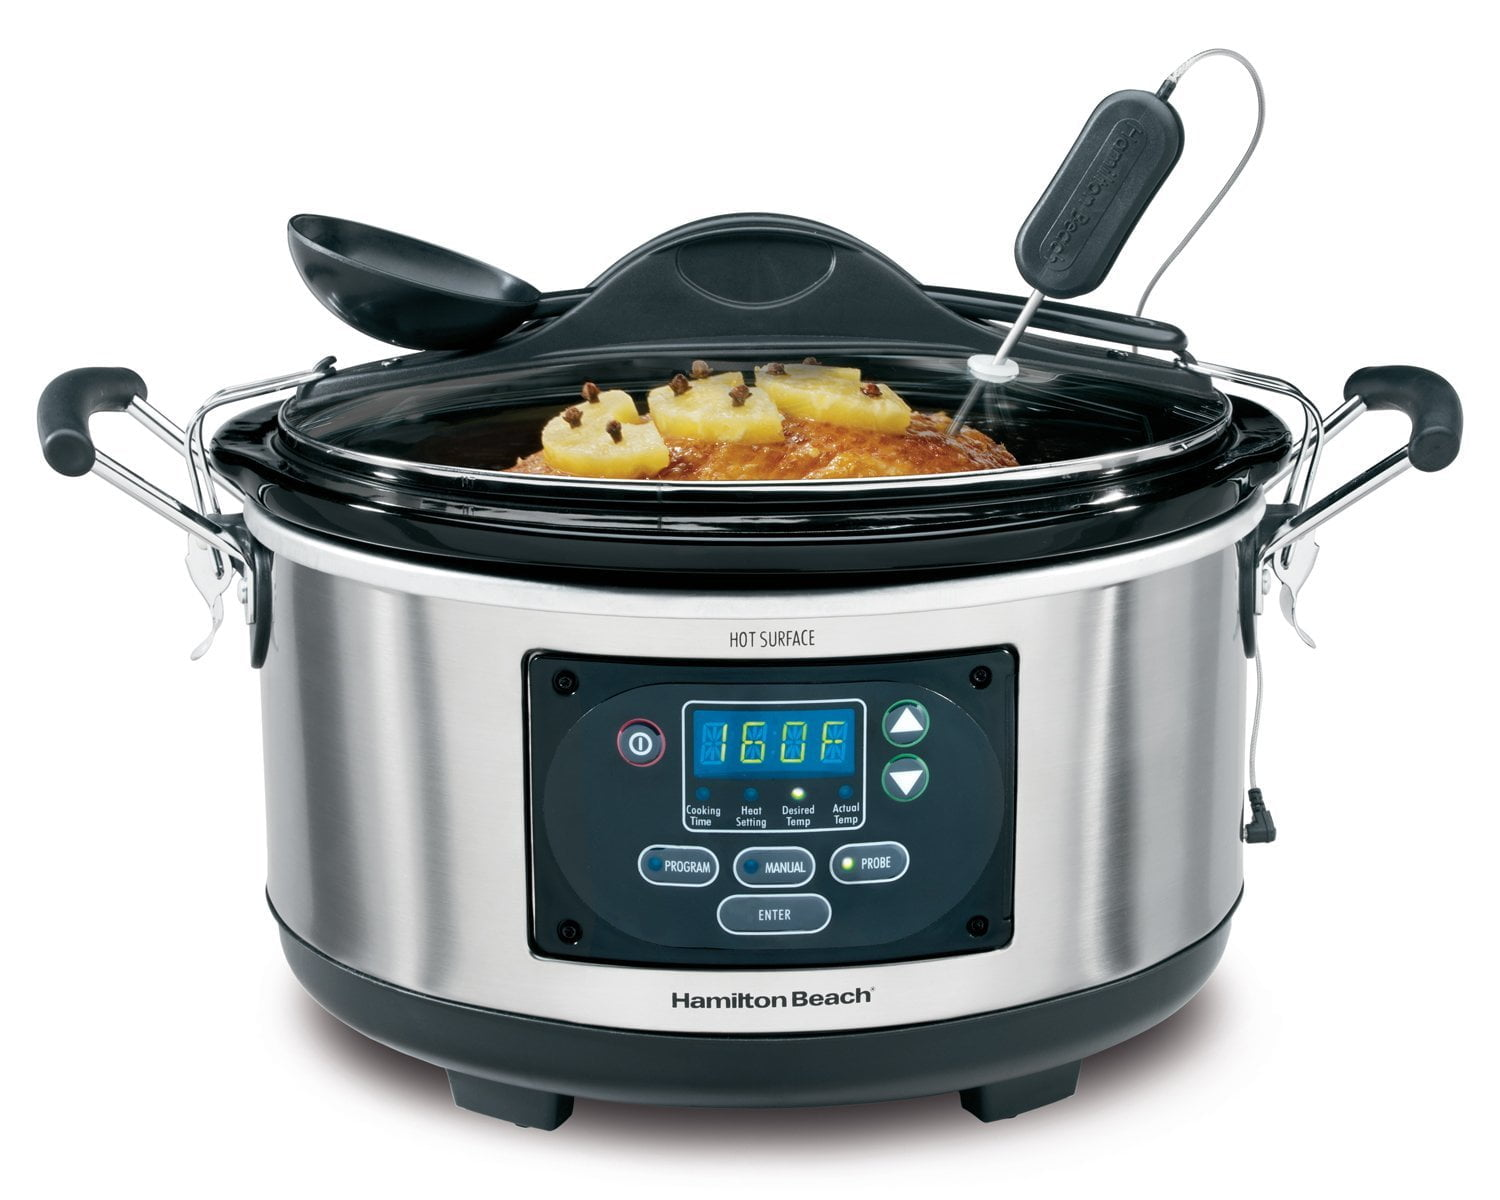 Hamilton Beach Programmable Slow Cooker Review